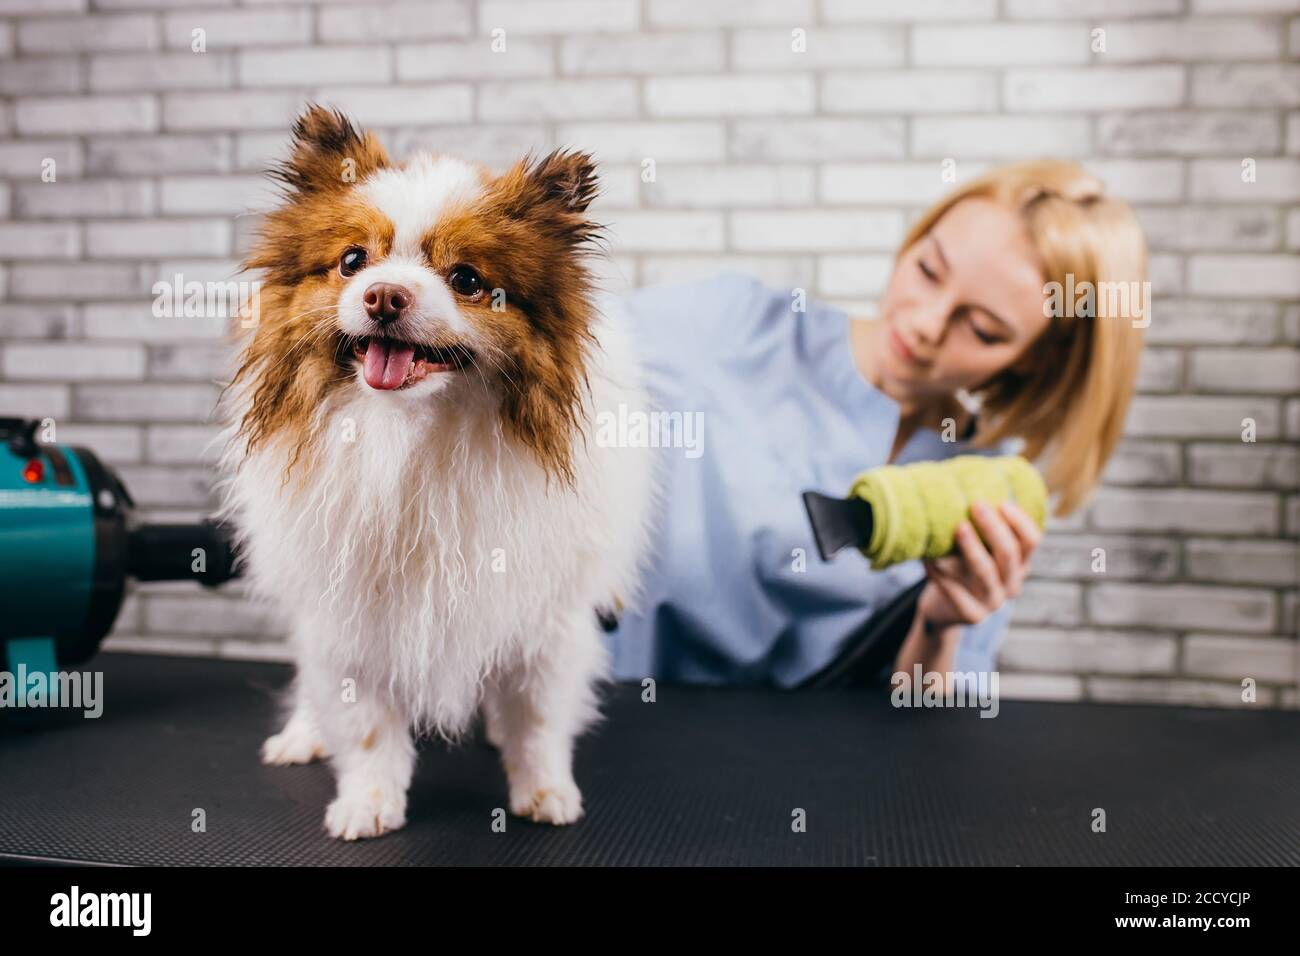 professional groomer haircut spitz dog in the beauty salon for dogs. the concept of popularizing haircuts and caring for dogs, domestic animals Stock Photo